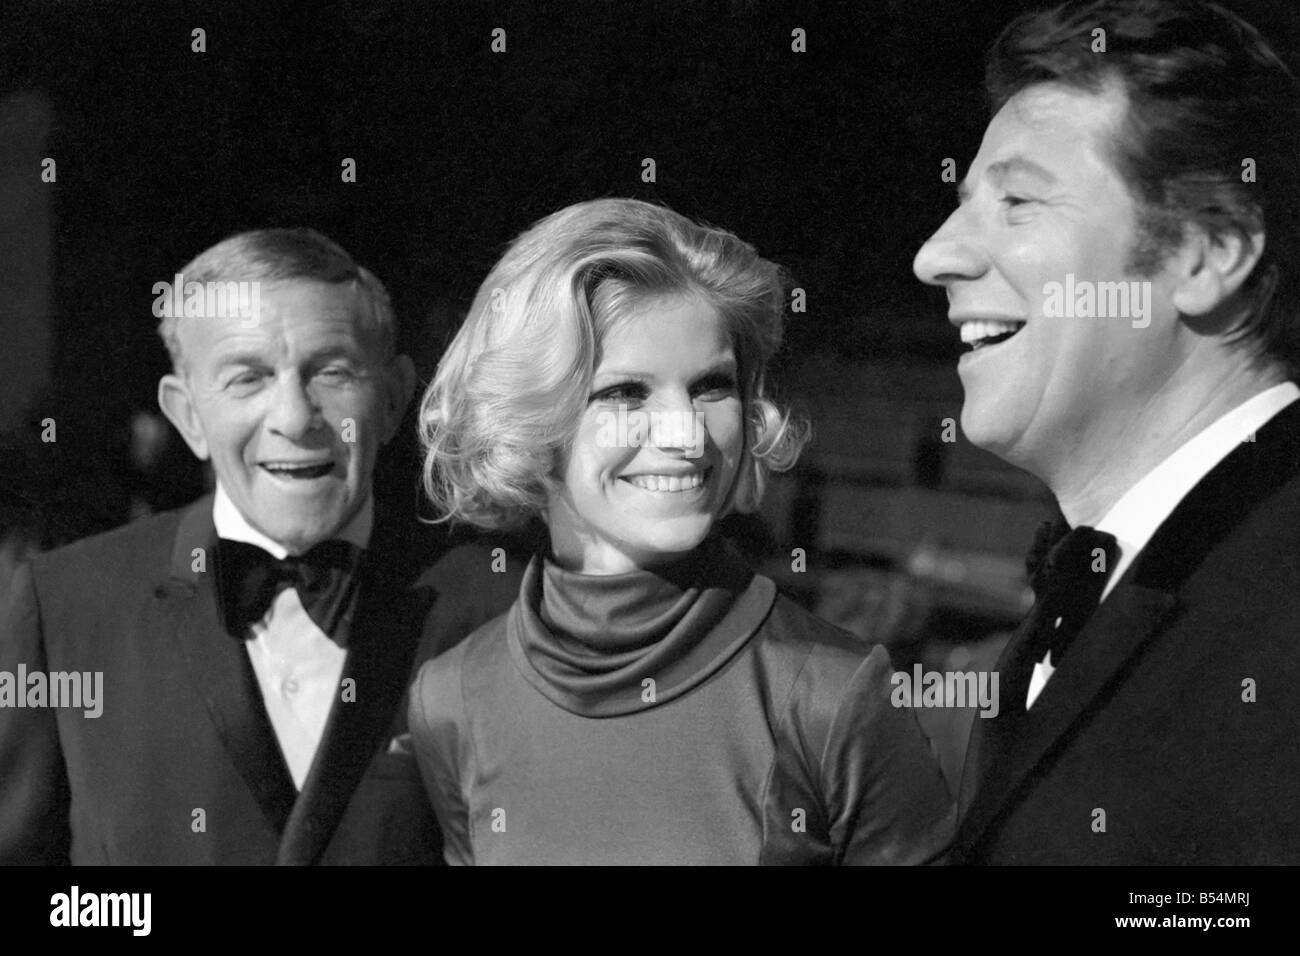 Entertainment Television Presenters. Max Bygraves (right) with guests and artistes appearing in his show Max. December - Stock Image